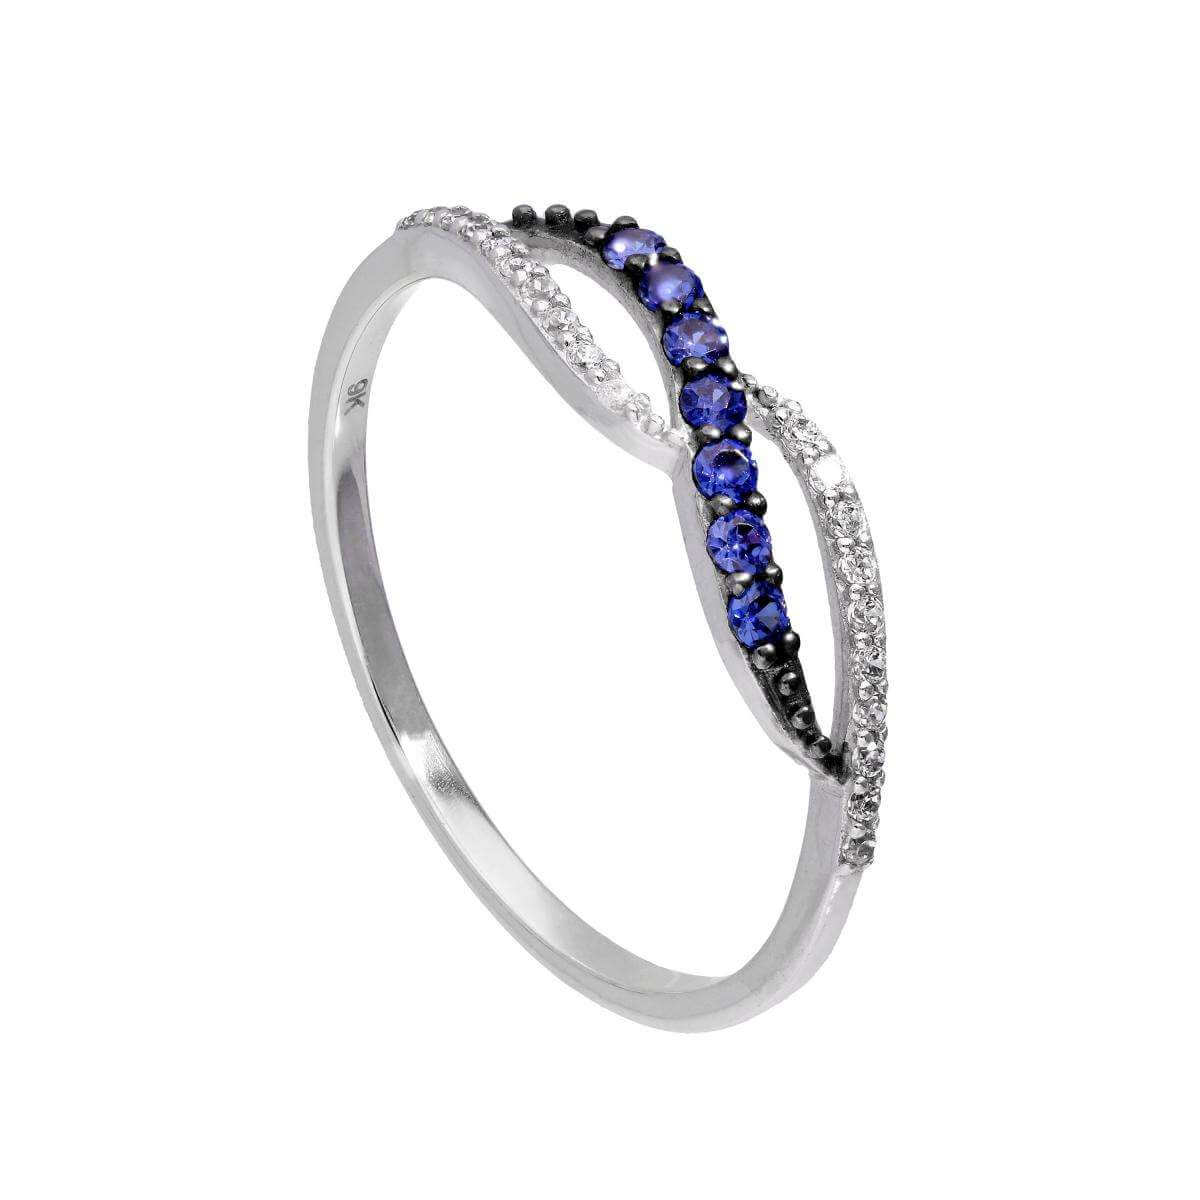 9ct White Gold & Sapphire Infinity Swirl Ring w Clear CZ Crystals I - U